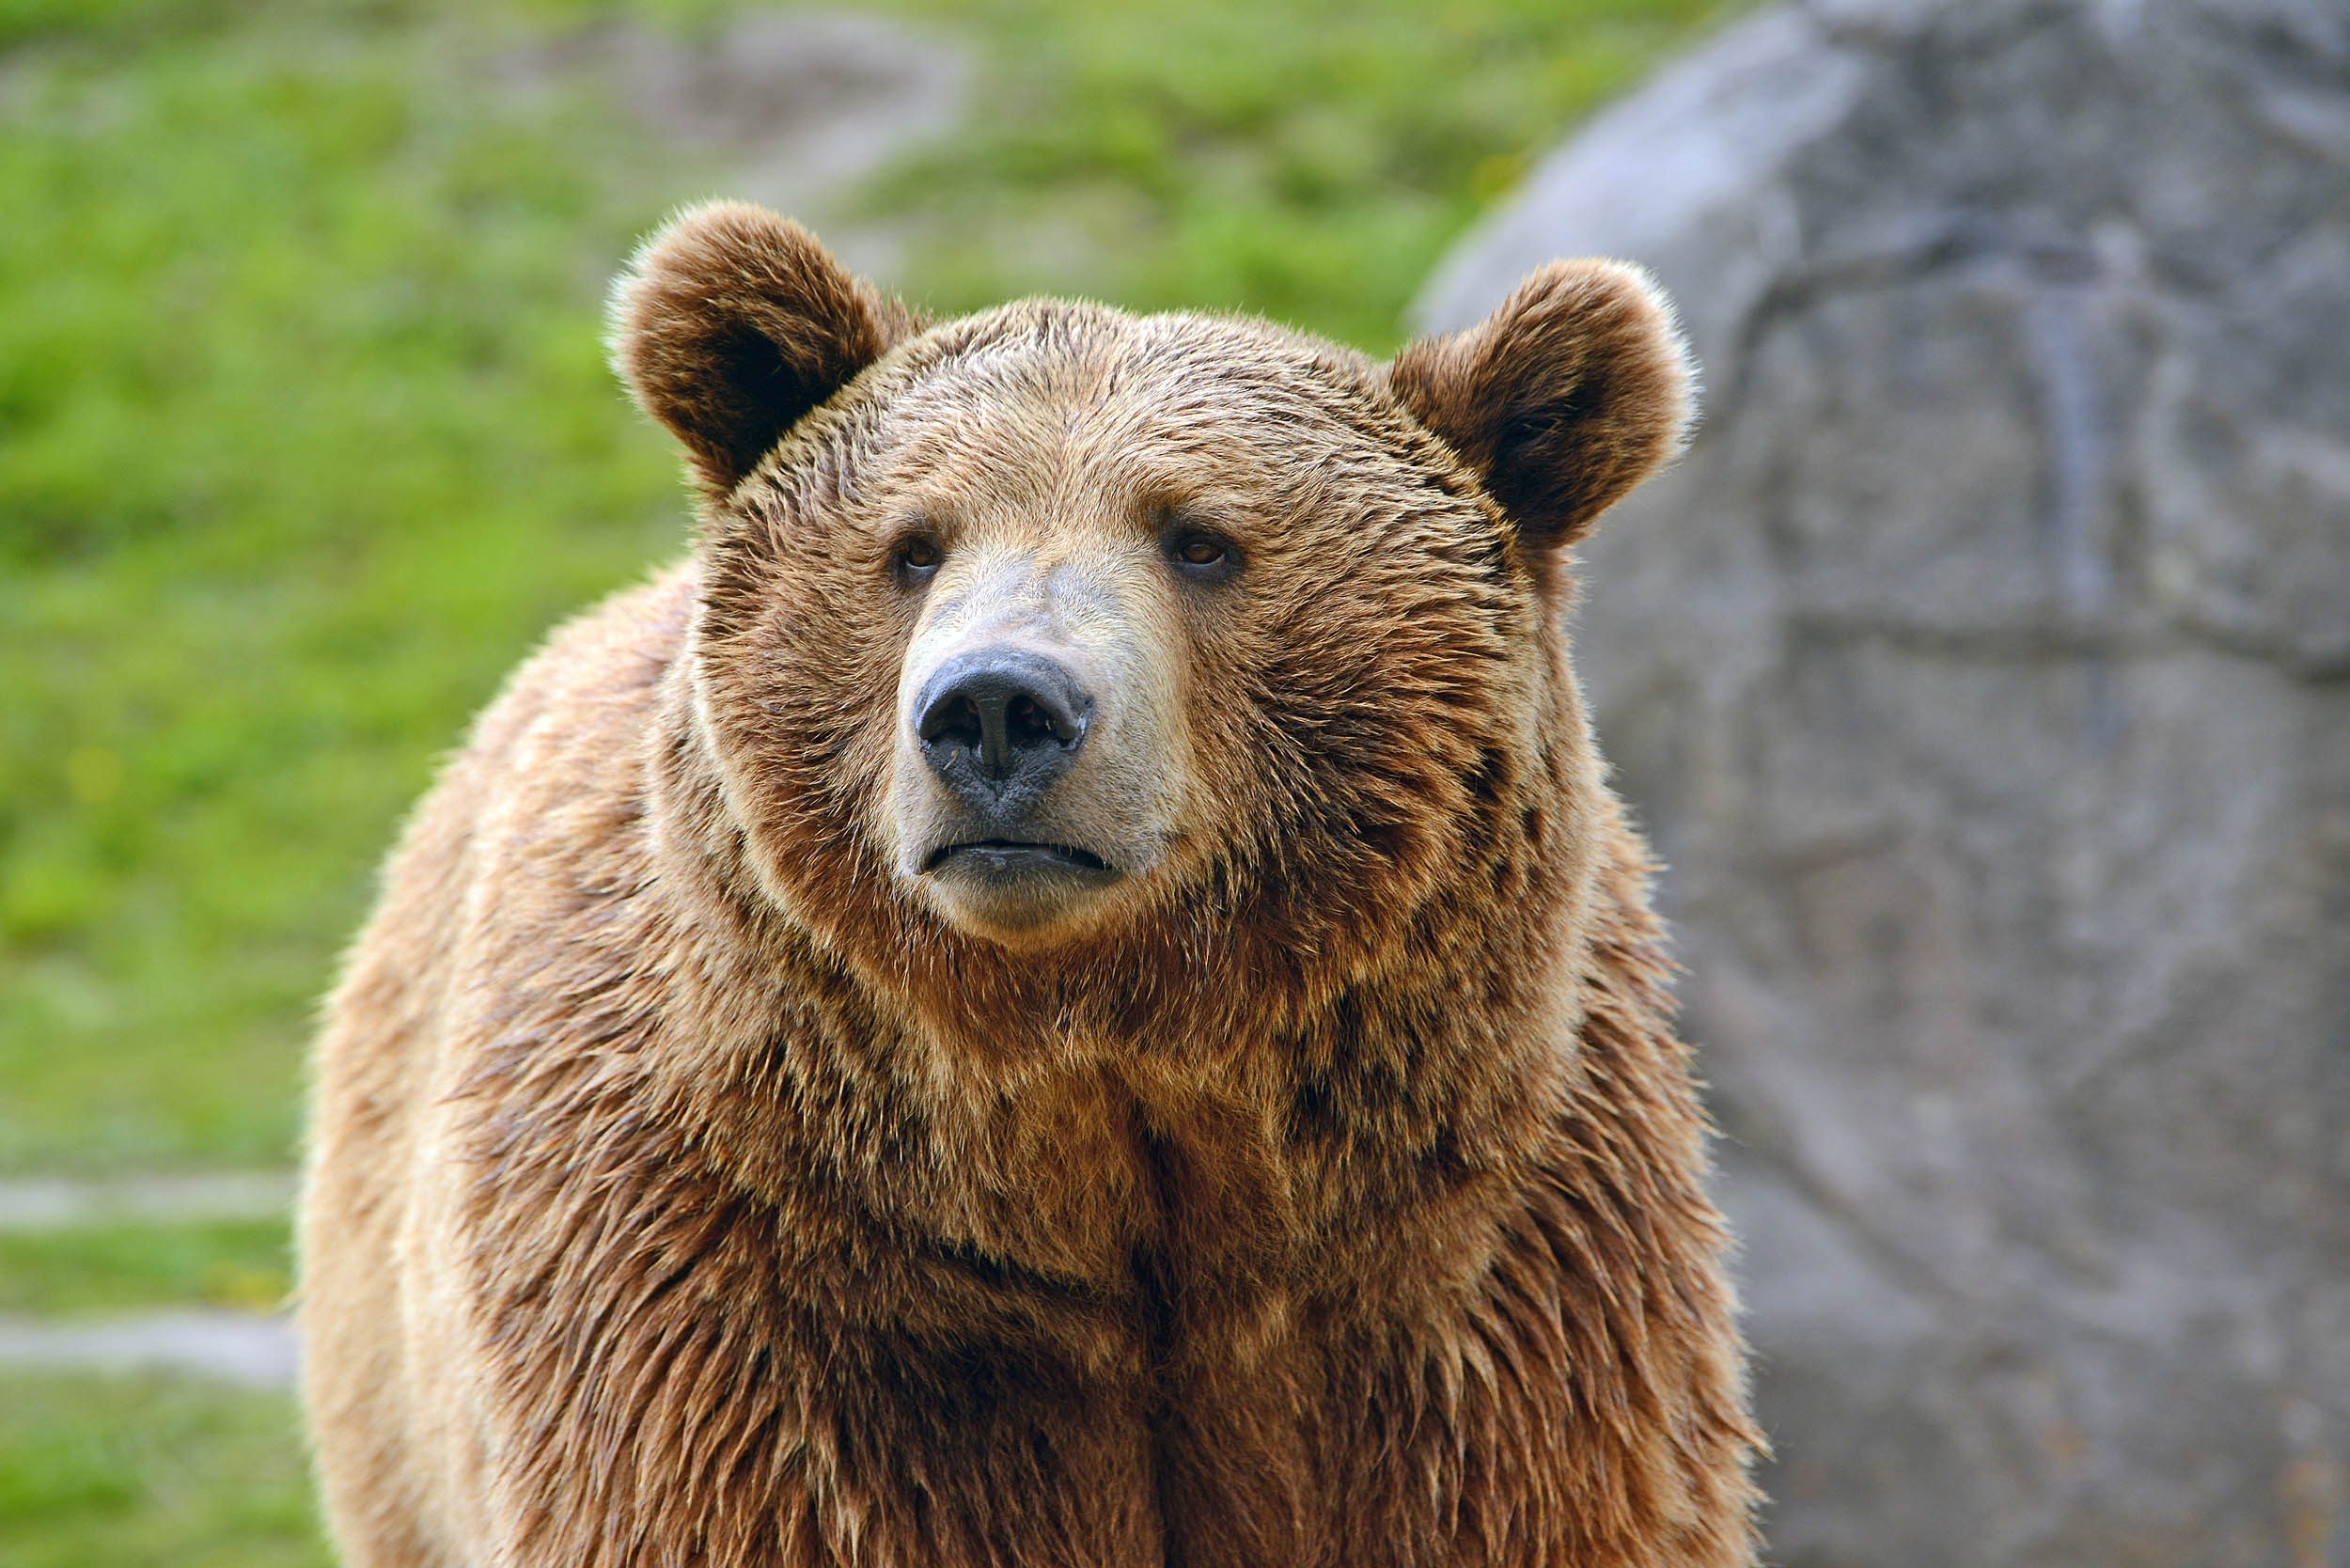 Ecological traps pose big risks for grizzly bears